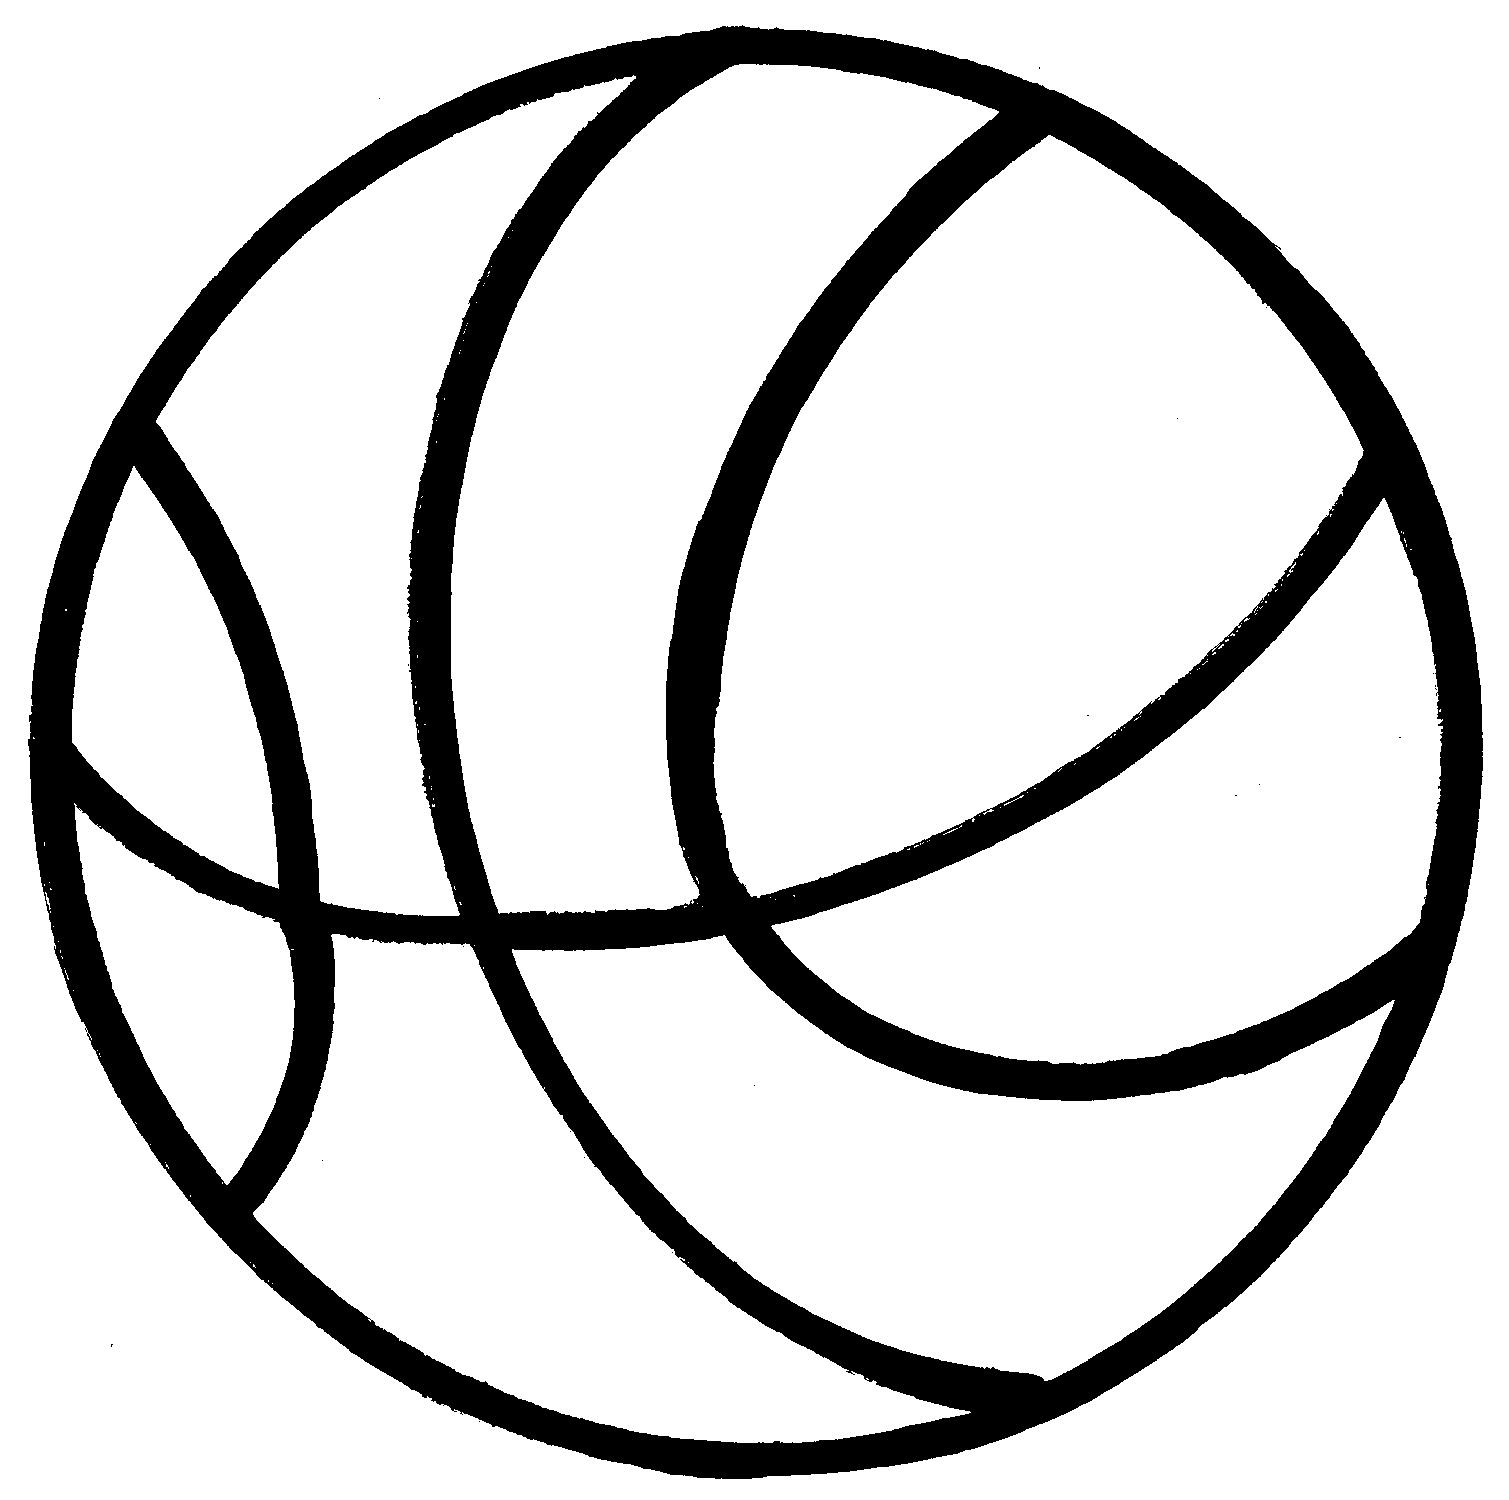 hight resolution of basketball black and white basketball hoop clipart black and white free